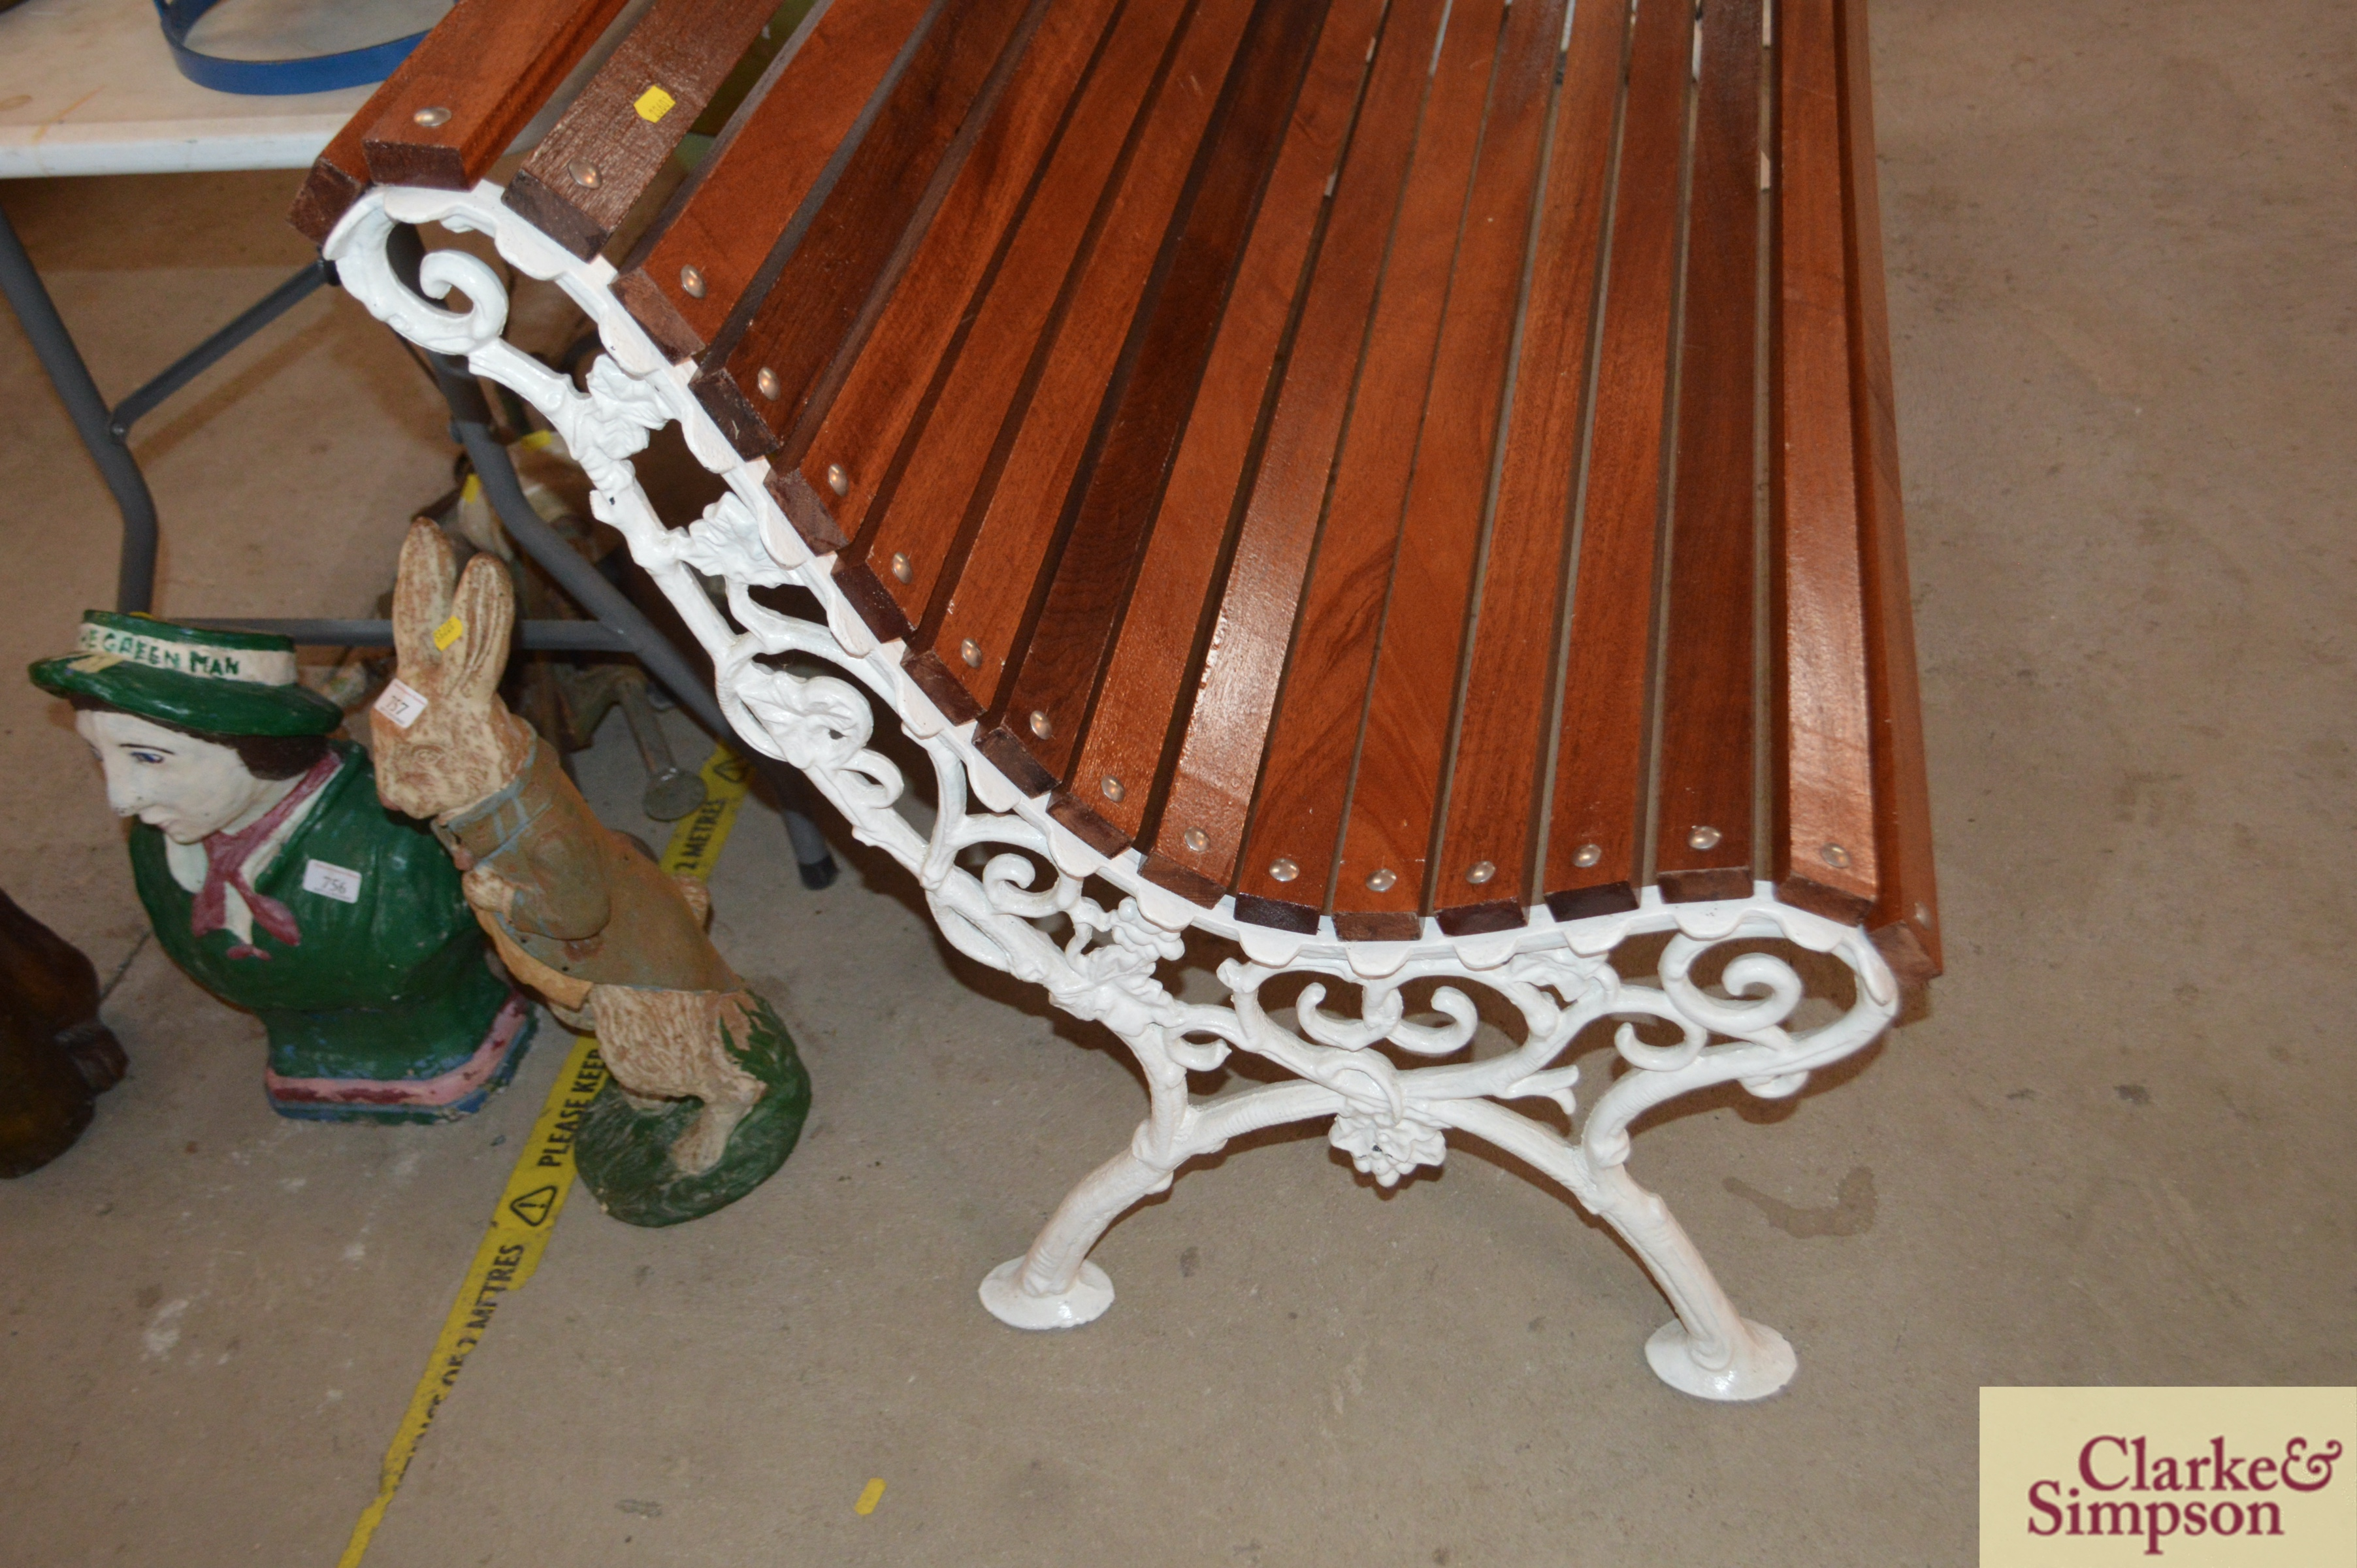 An ornate cast iron and teak slatted roll top benc - Image 3 of 4